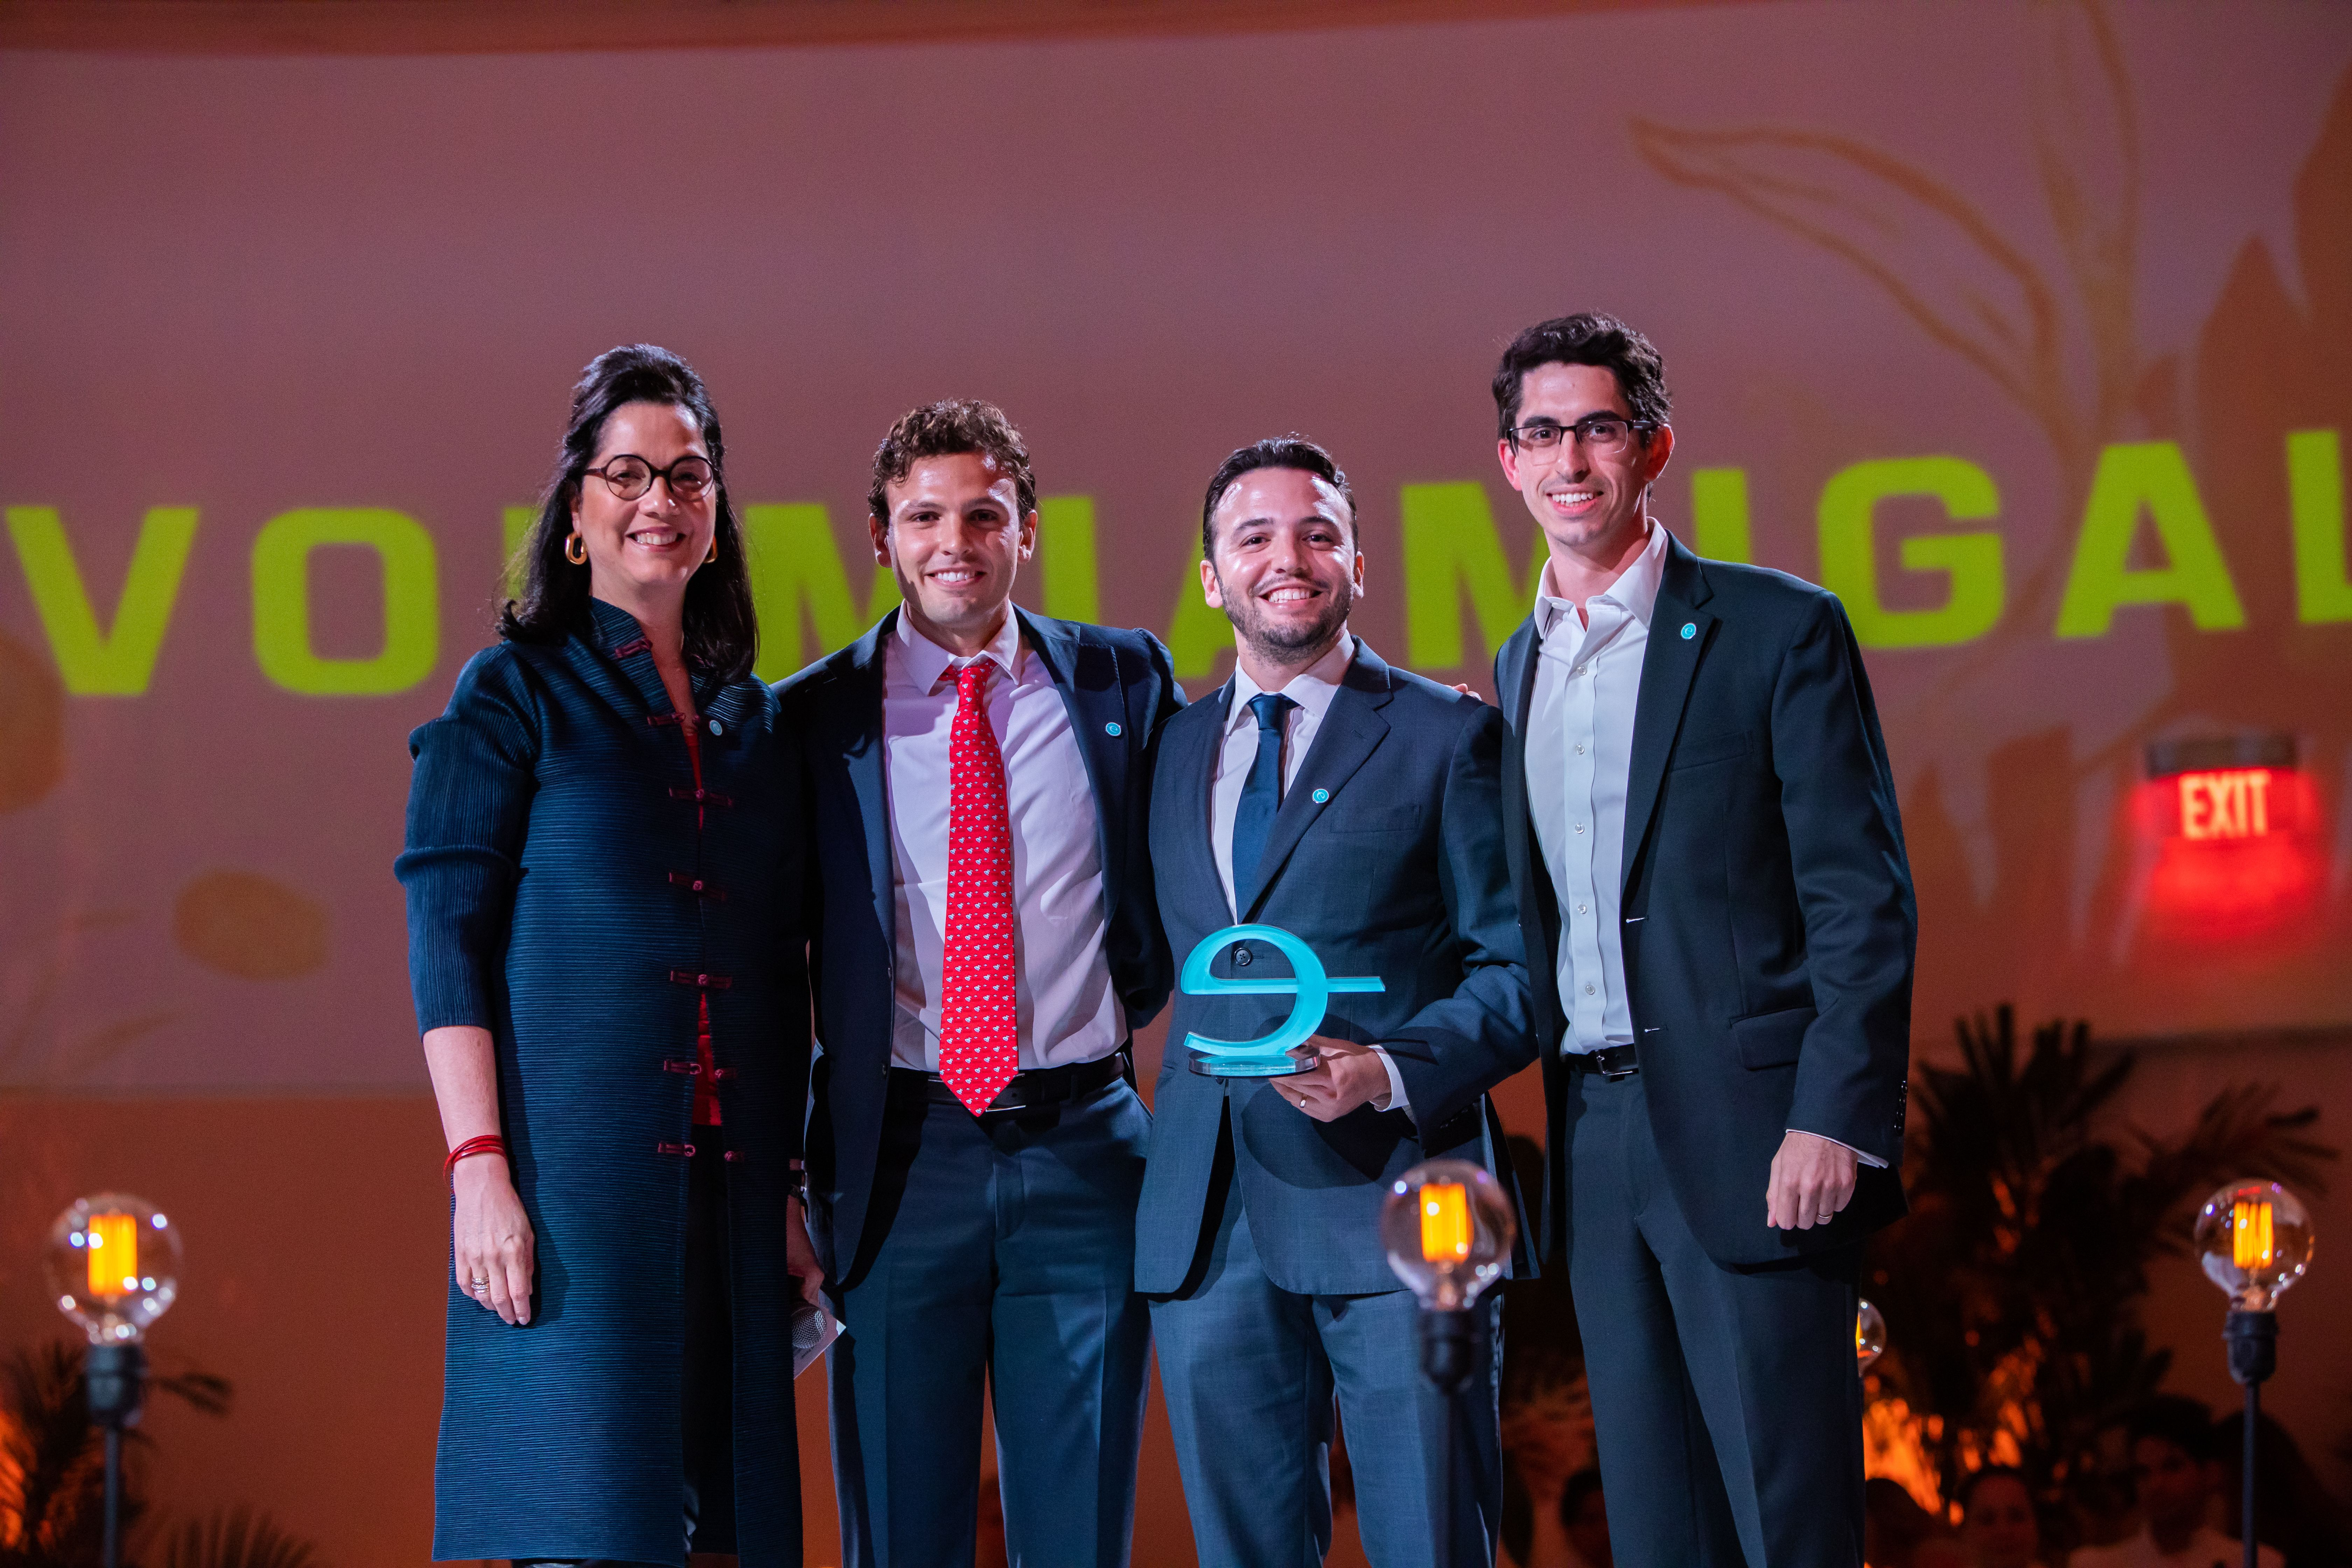 ECOSYSTEMS' FOUNDERS, RICHARD AND LAWRENCE LAMONDIN, NAMED ENDEAVOR MIAMI ENTREPRENEURS OF THE YEAR